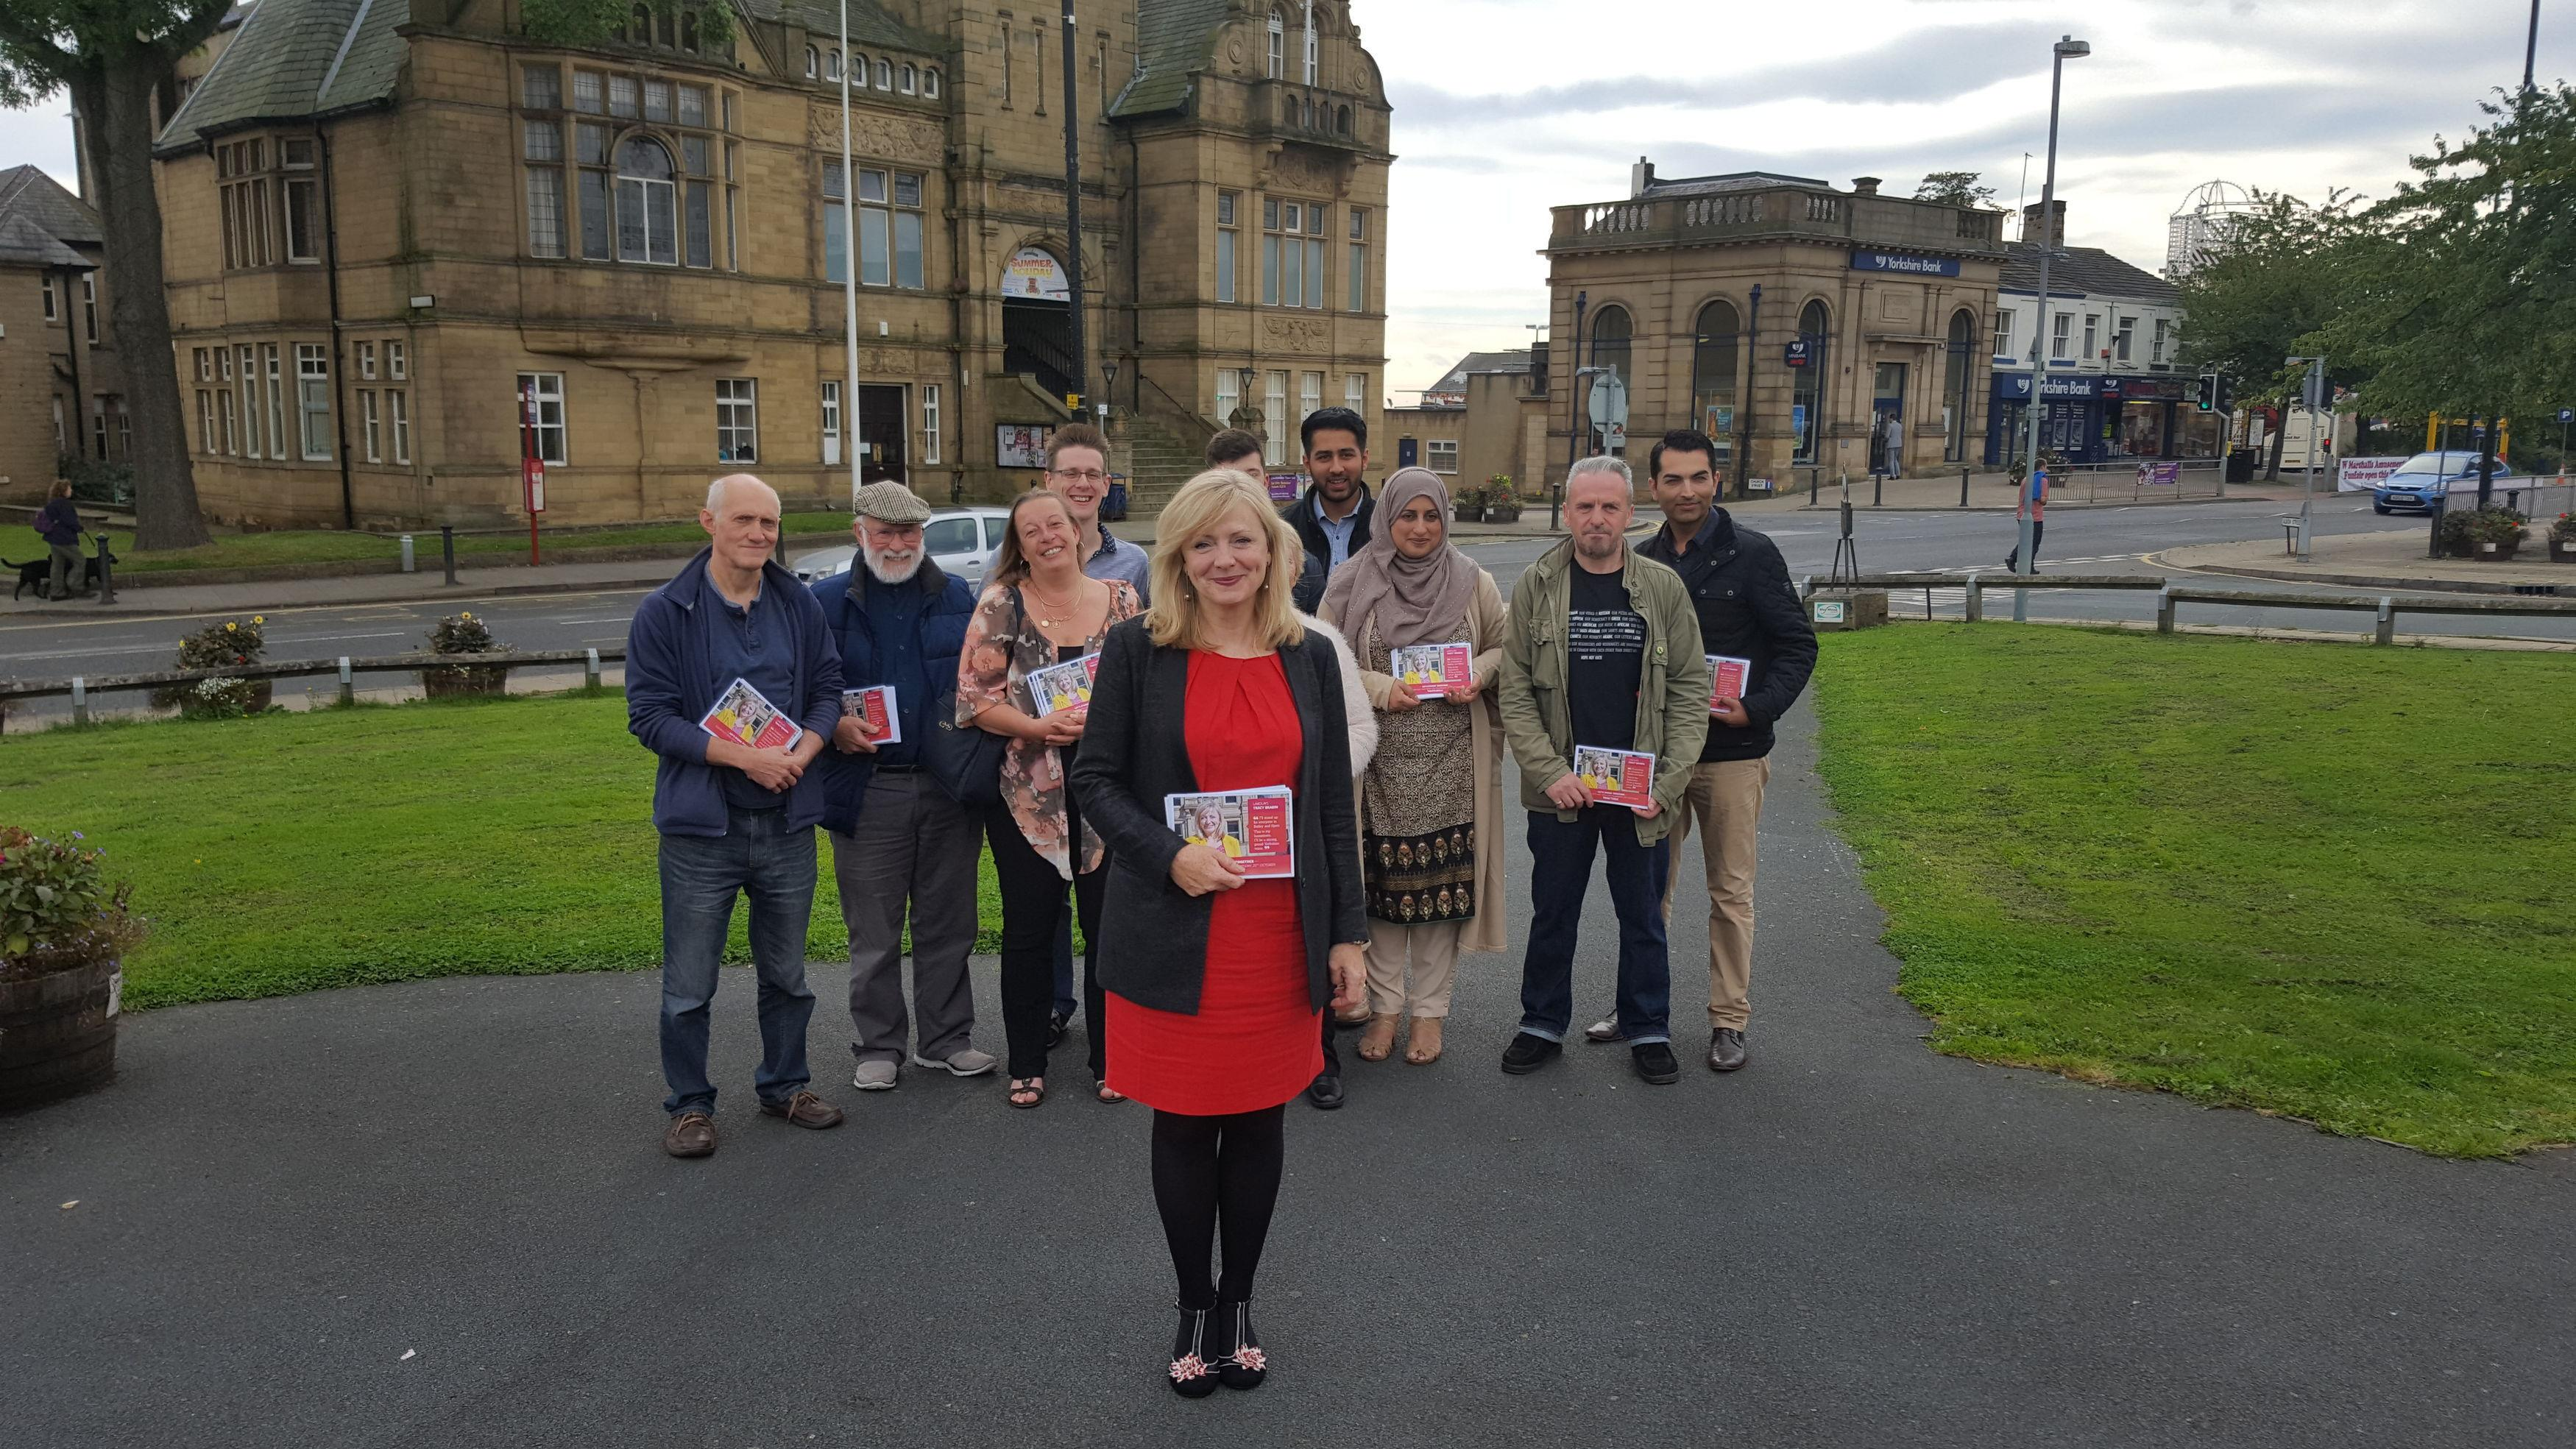 Former Coronation Street actress and Labour candidate Tracy Brabin on the by-election campaign trail in Cleckheaton ahead of next month's Batley and Spen by-election.